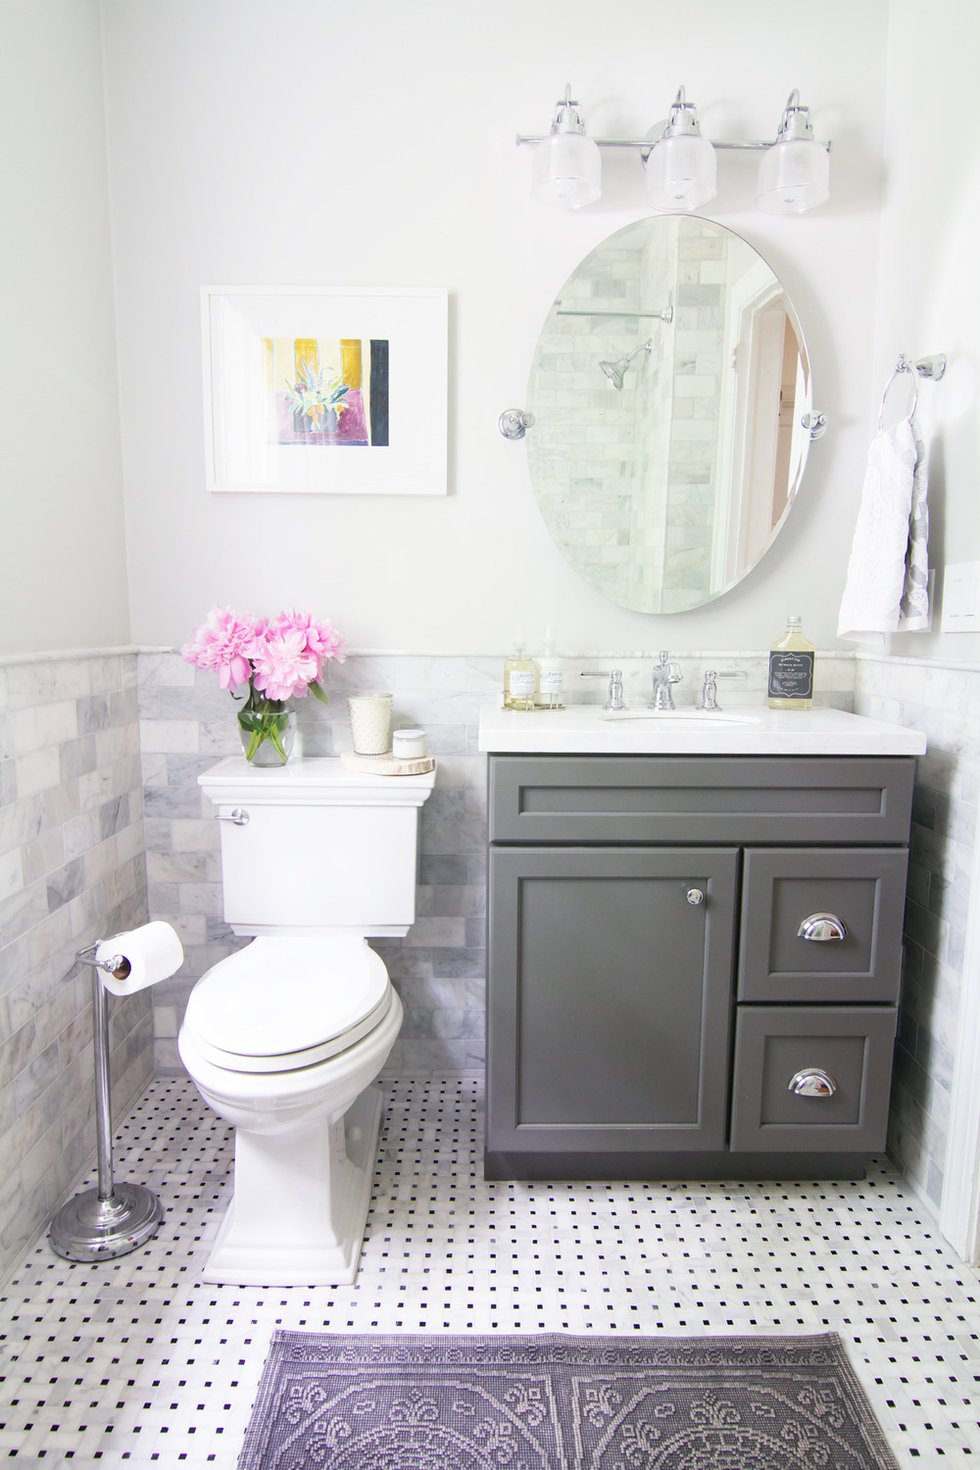 Tiny Bathroom Ideas And Tips For Having The Tidy And Good Looking - Tiny bathroom ideas for small bathroom ideas